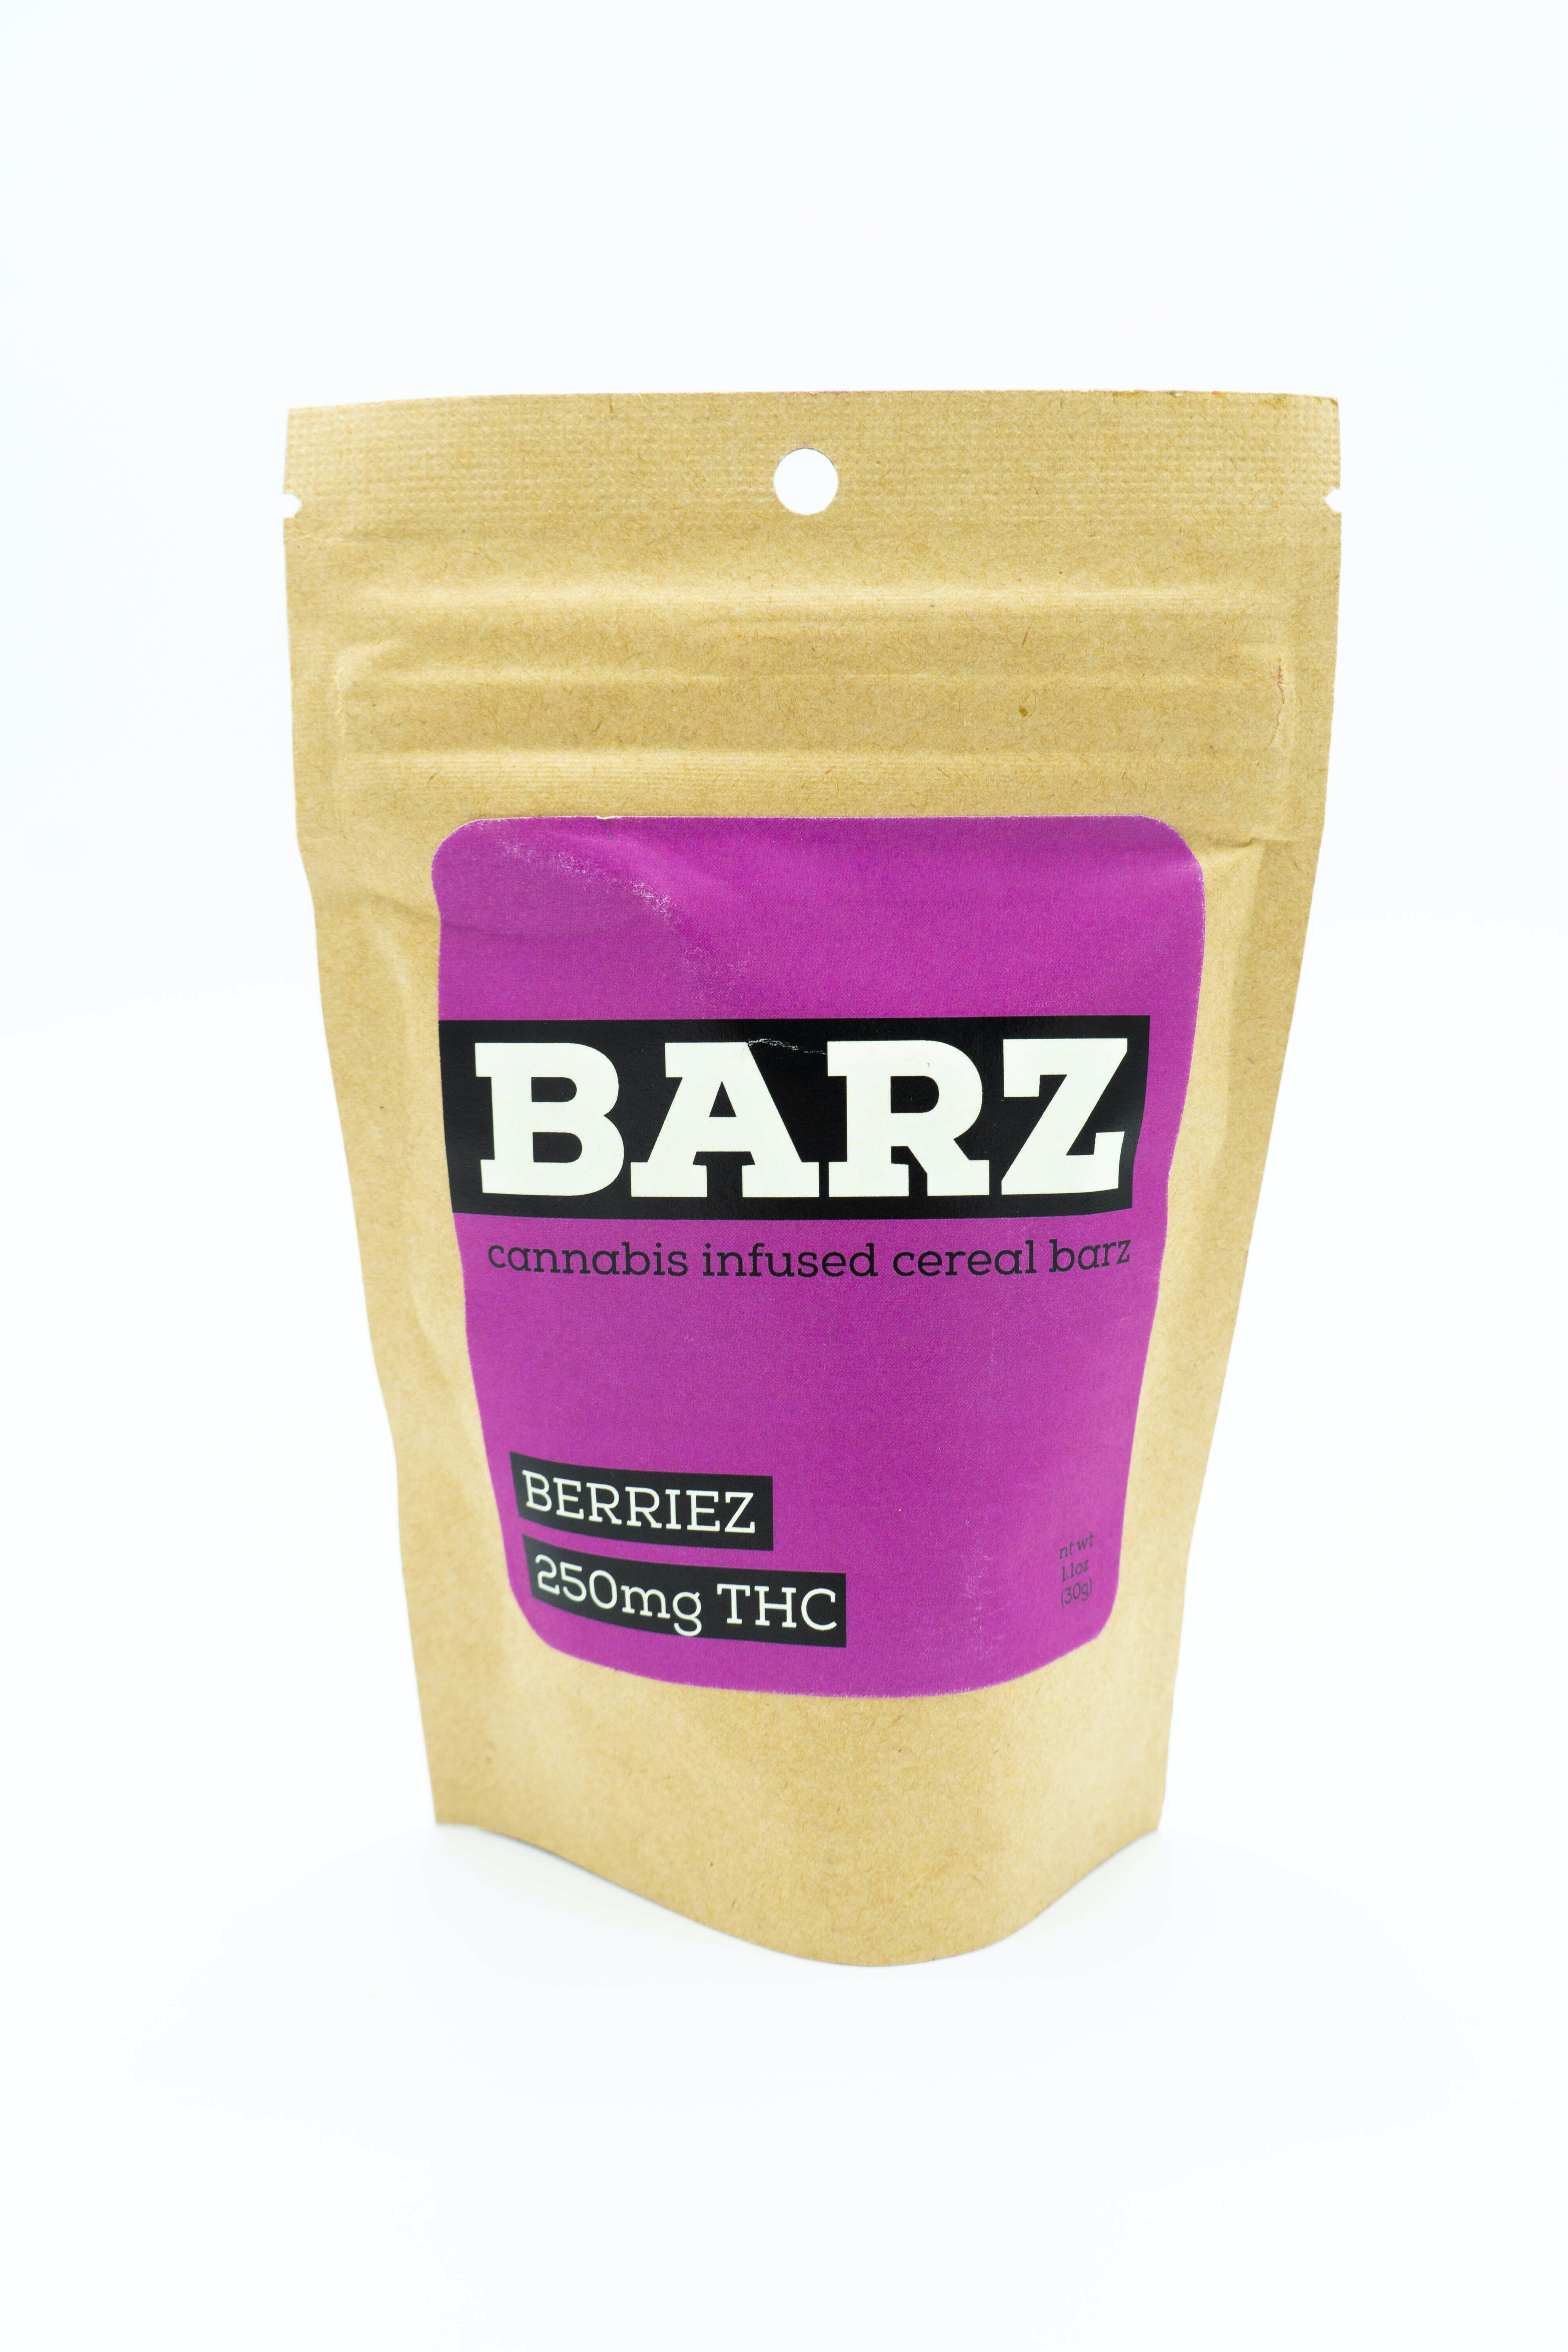 Mr Mack S Barz Berriez Cereal Treat 250mg Thc High Dose Reviews Weedmaps Learning about crunch berries & green poop… my experience: mr mack s barz berriez cereal treat 250mg thc high dose reviews weedmaps